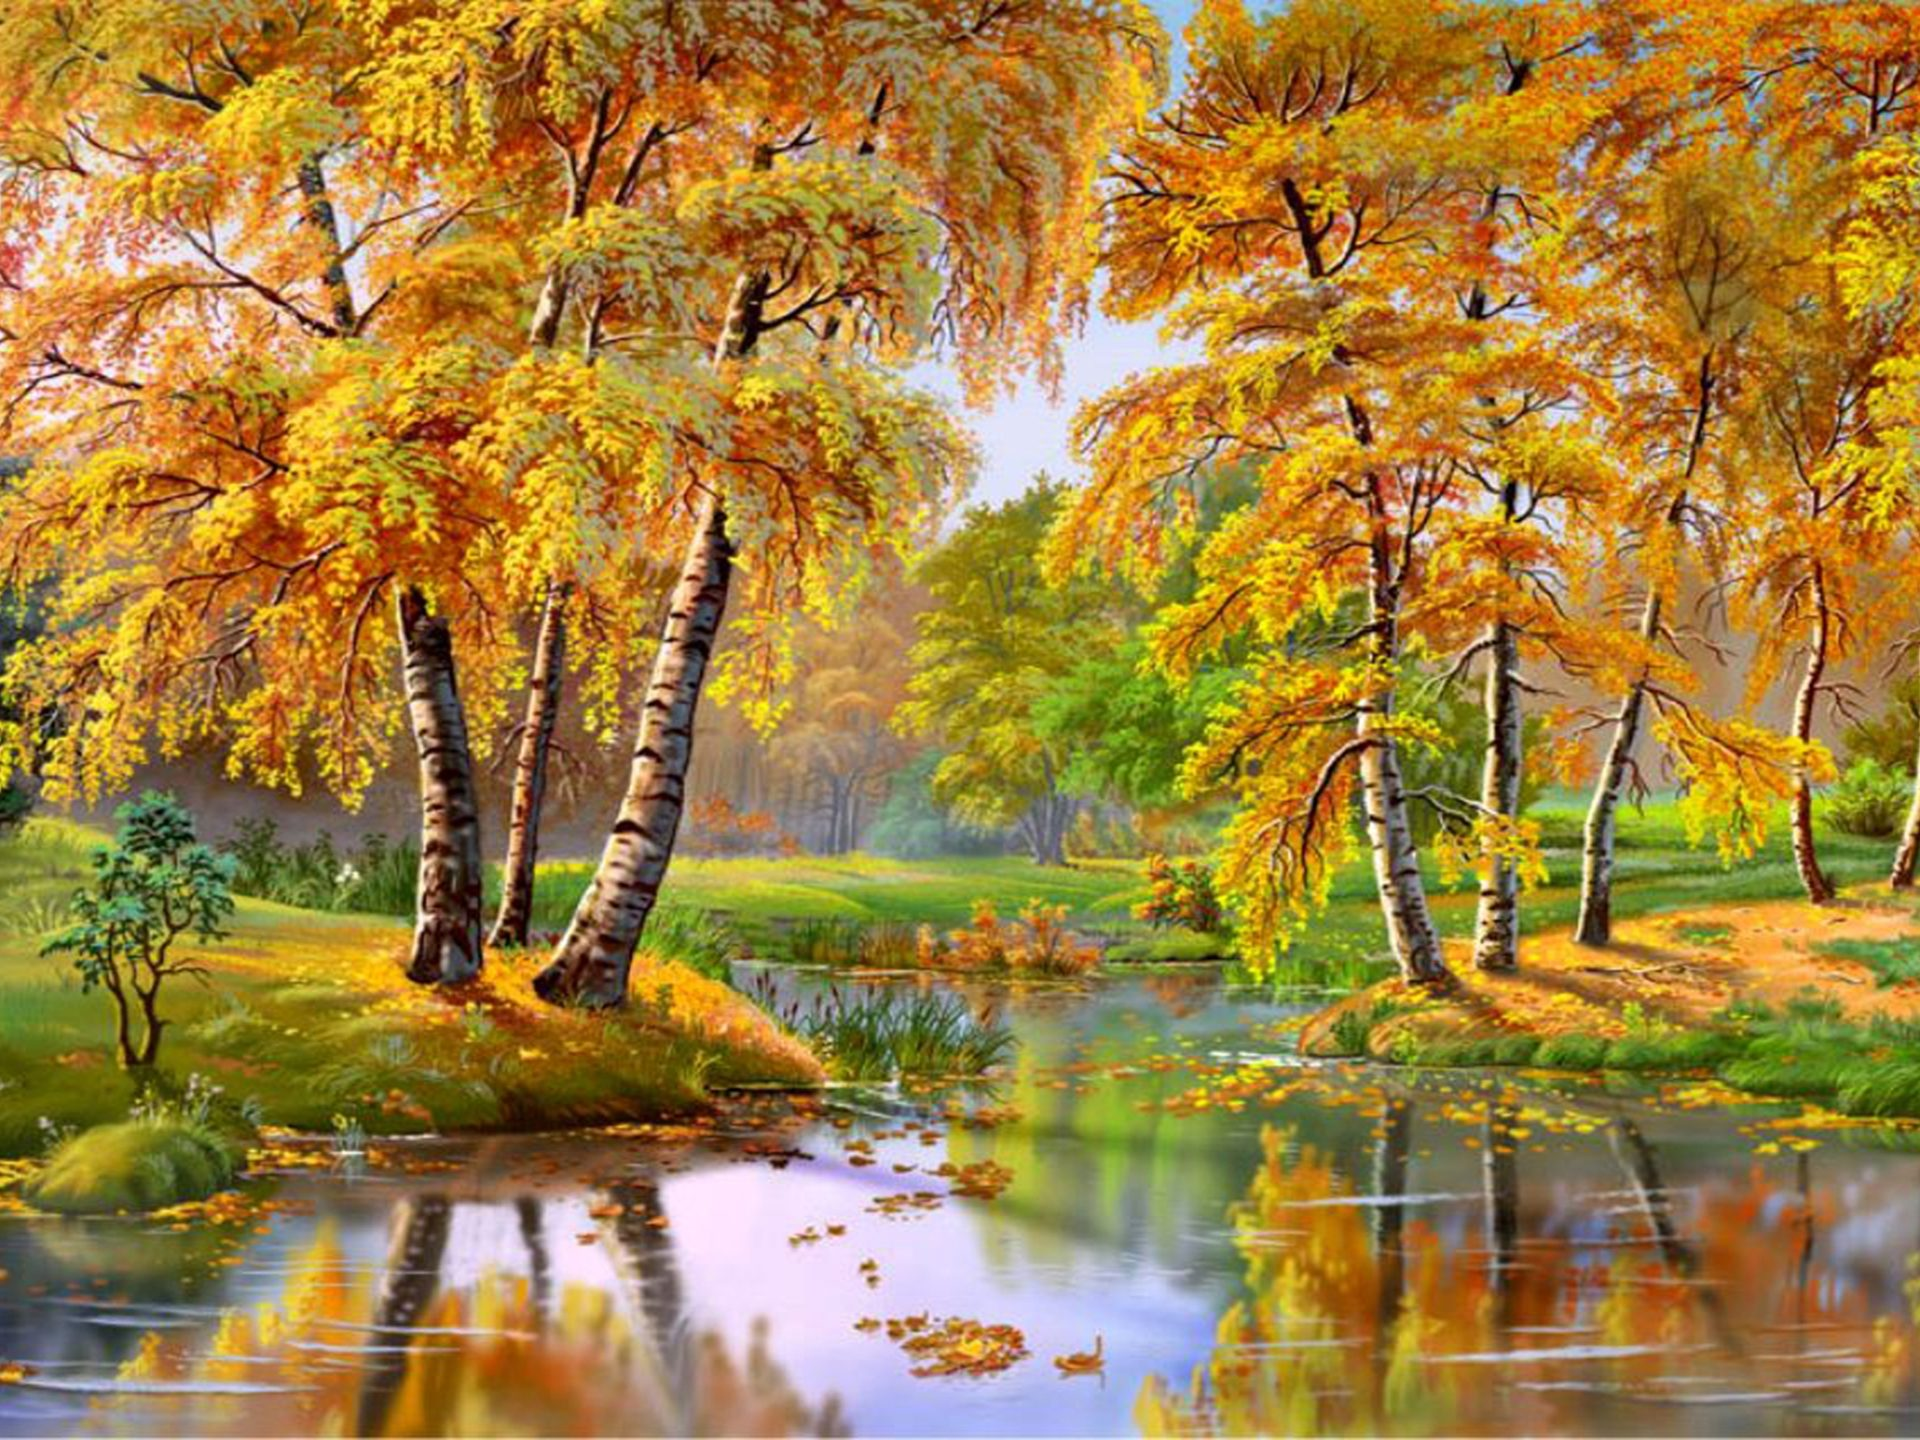 Fall Iphone 5 Wallpaper Wonderful Autumn Landscape River Trees 087537